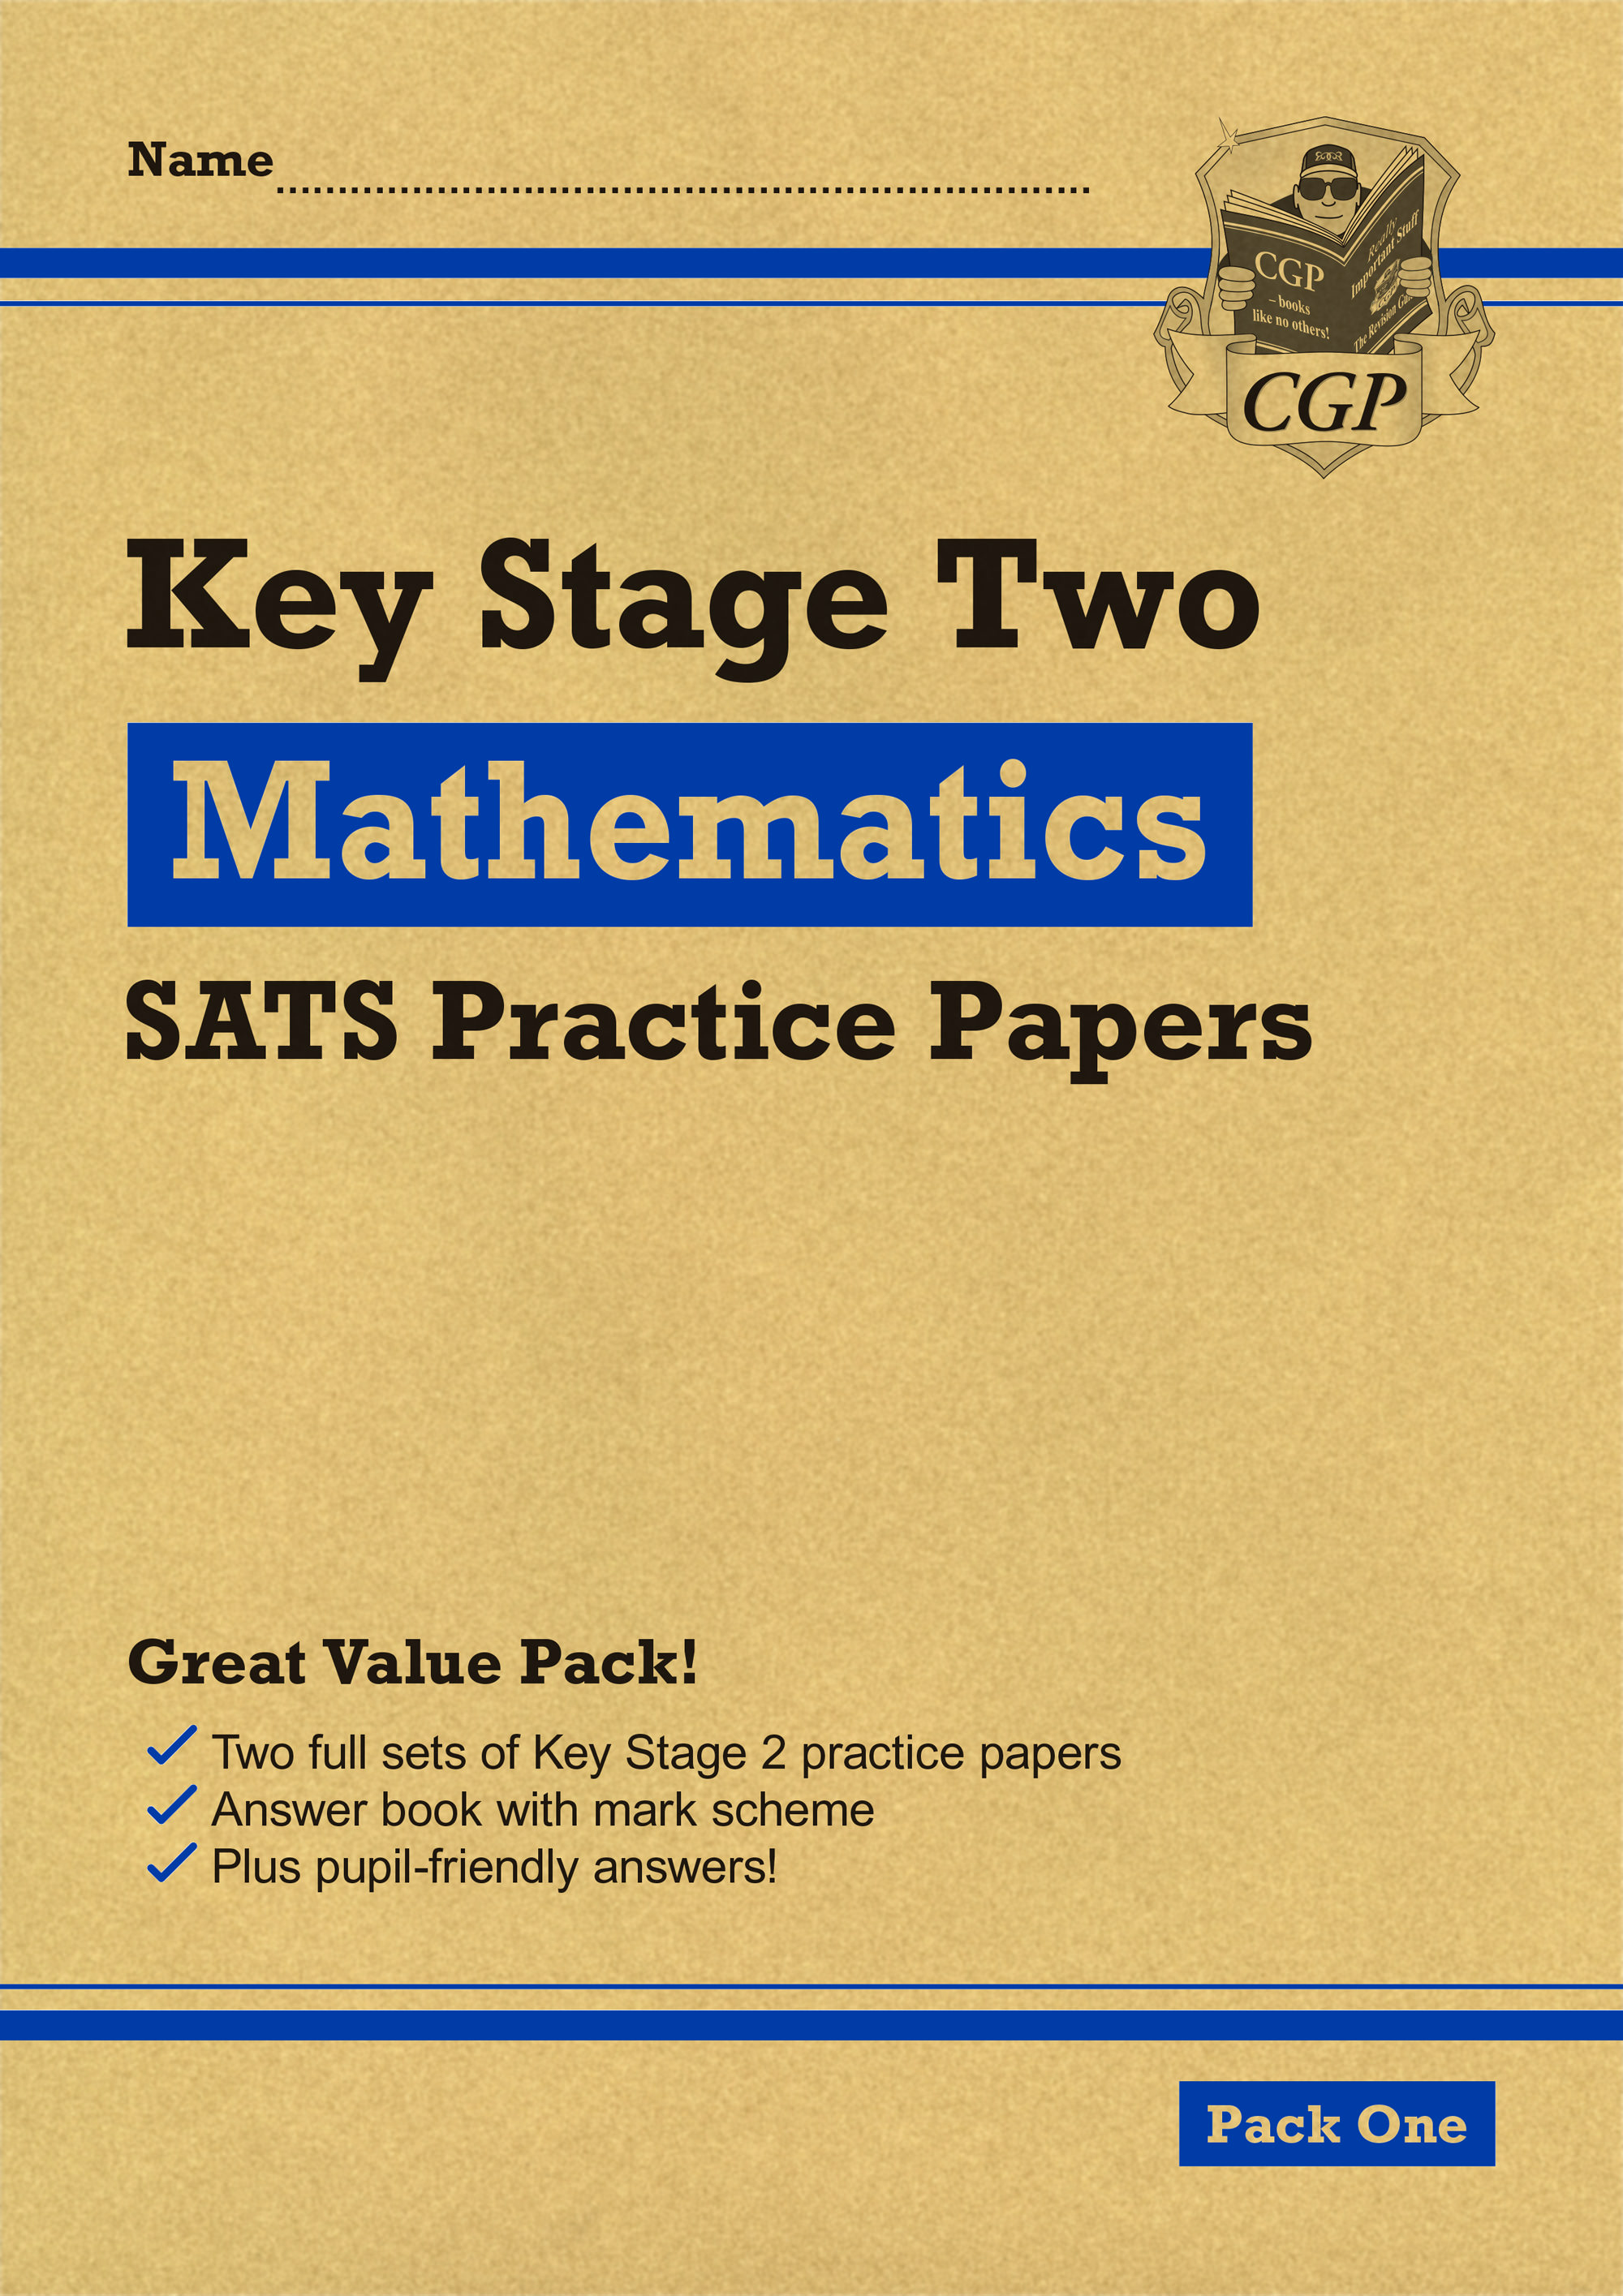 MHEP27 - New KS2 Maths SATS Practice Papers: Pack 1 (for the 2020 tests)